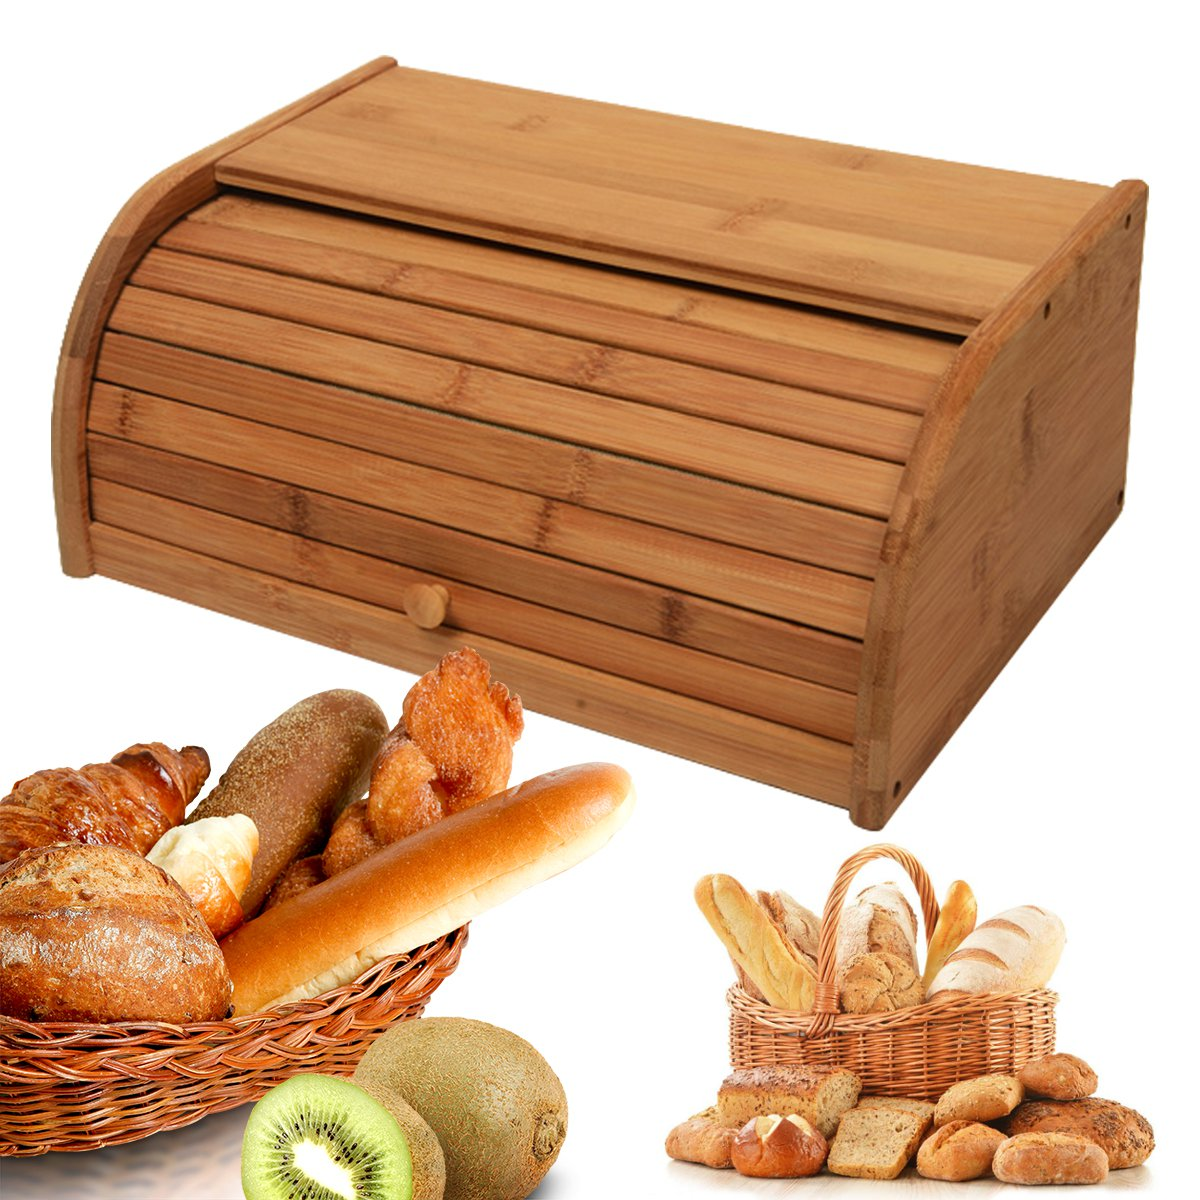 Bamboo Wooden Roll Top Bread Bin Loaf Container Home Kitchen Food